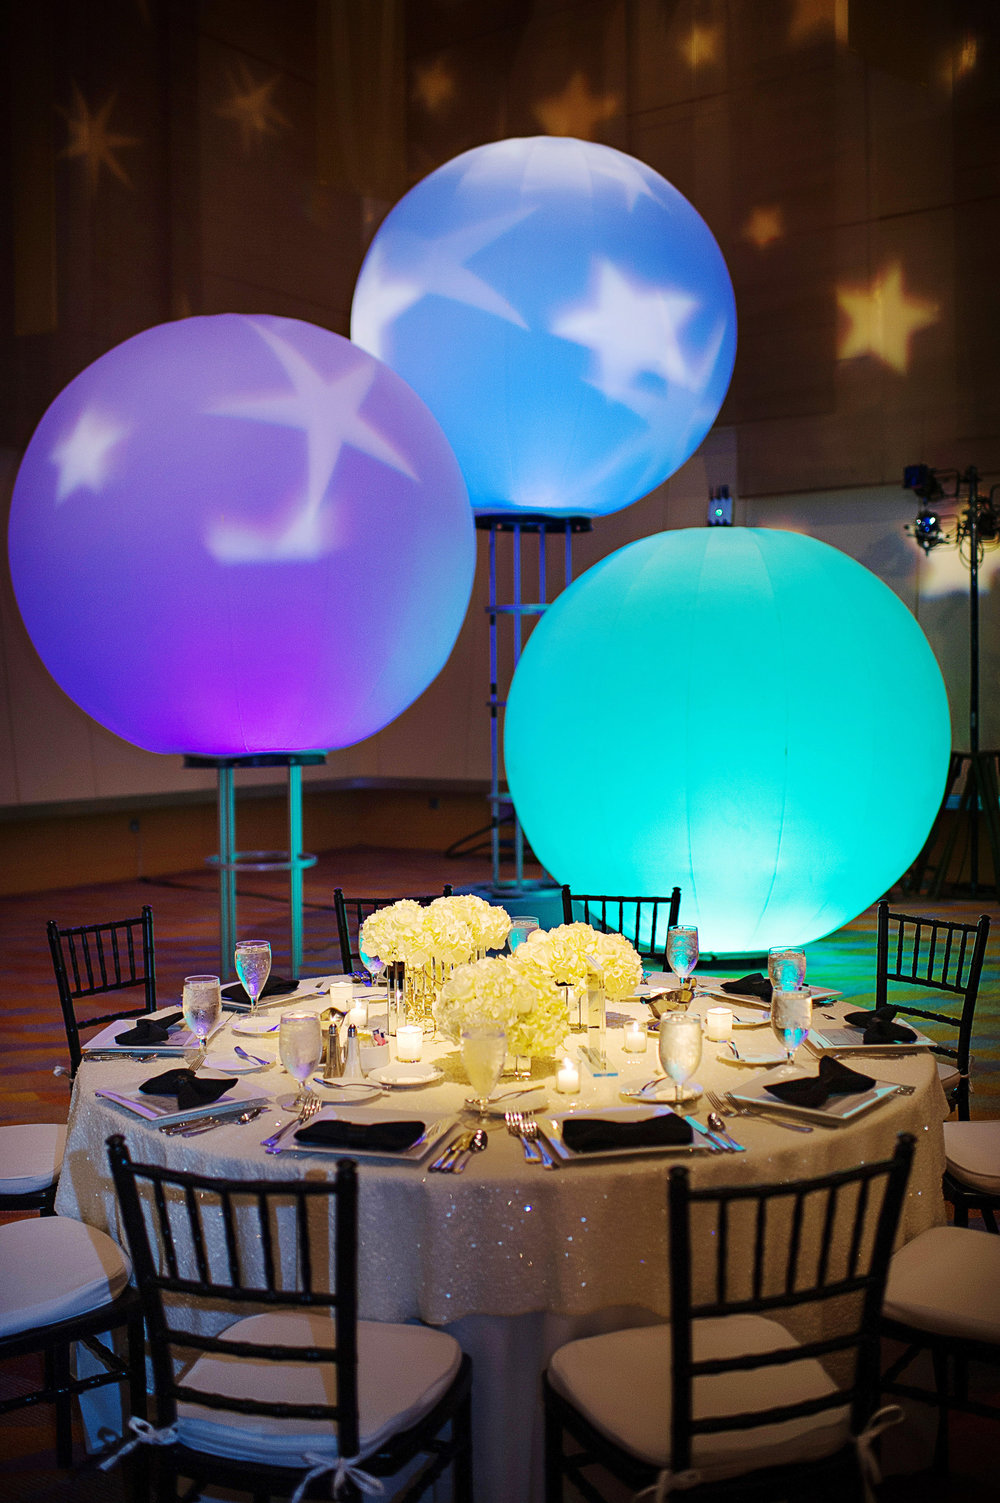 Courtenay Lambert Florals and Event Design, http:courtenaylambert.com.  Wedding of Sarah Haas & David Habel at Duke Energy Center in Cincinnati Ohio.  Gorgeous photography by Kortnee Kate, and flowers and event design by Courtenay Lambert Floral and Event Design. Glitter. Sparkle. Christmas Wedding. Wedding florist and designer Cincinnati